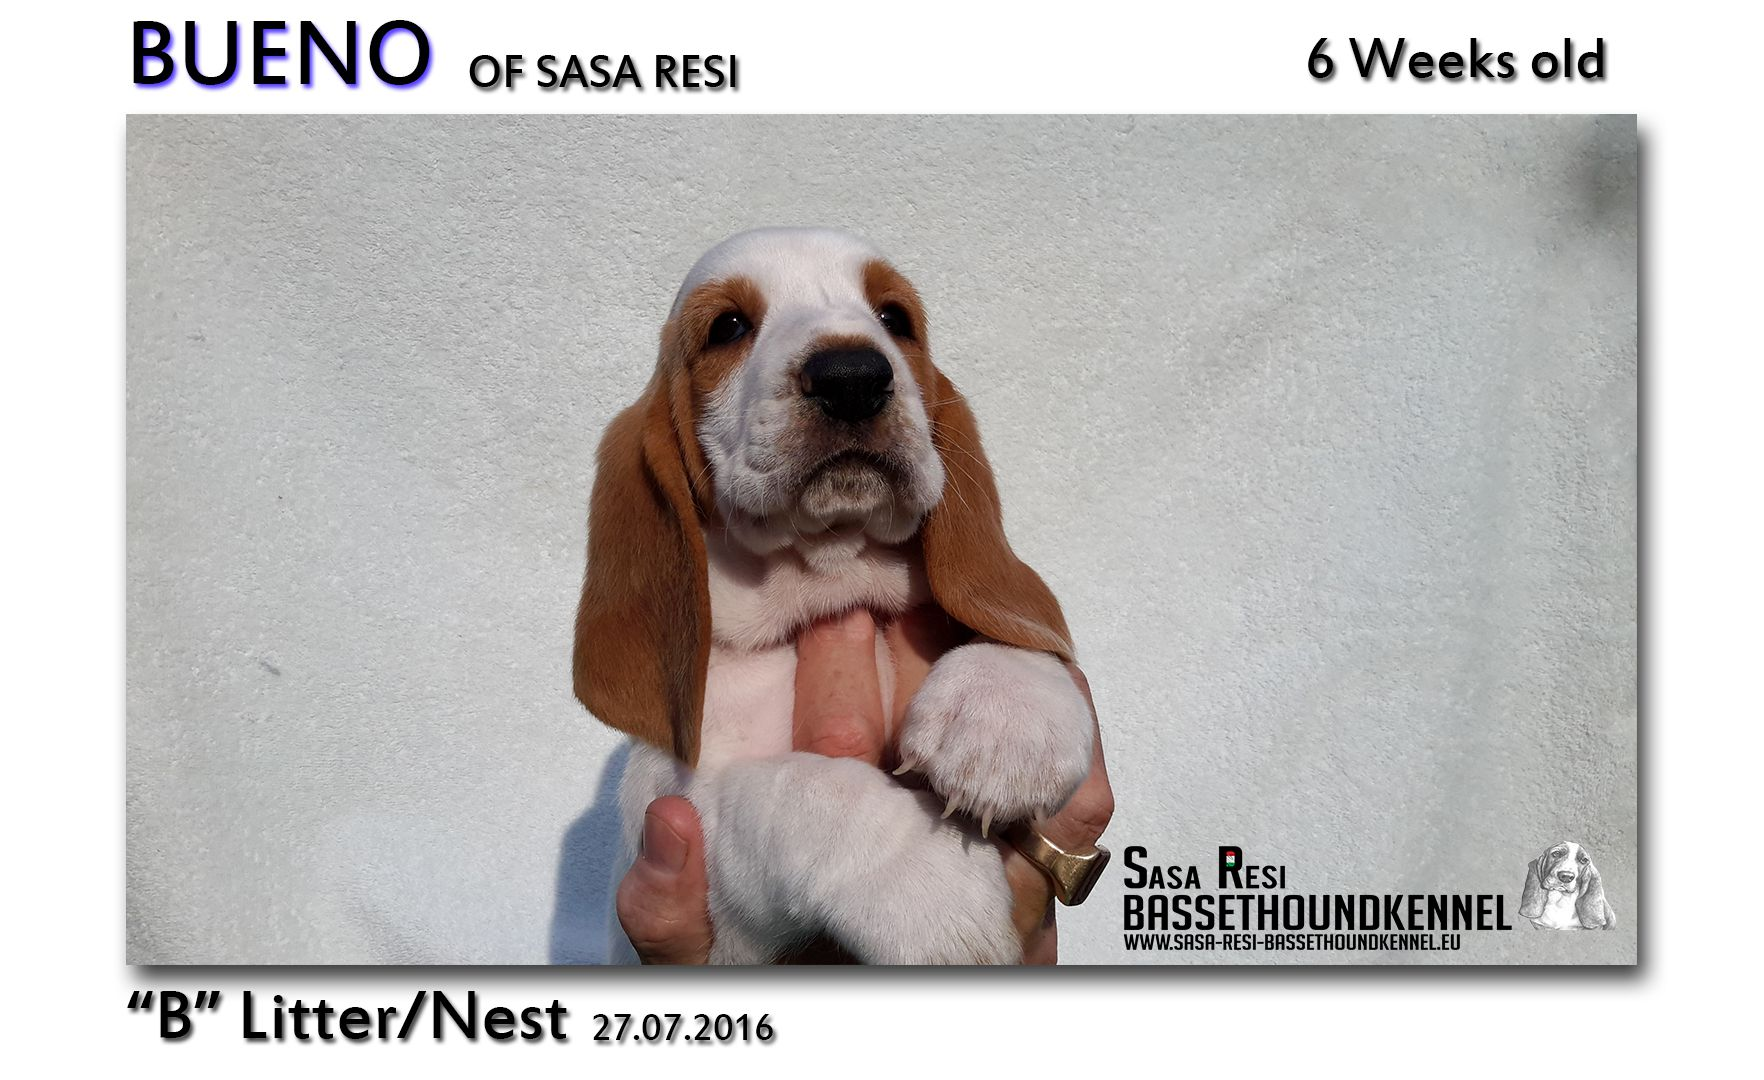 1 compressed 13 SaSa ReSi Bassethoundkennel